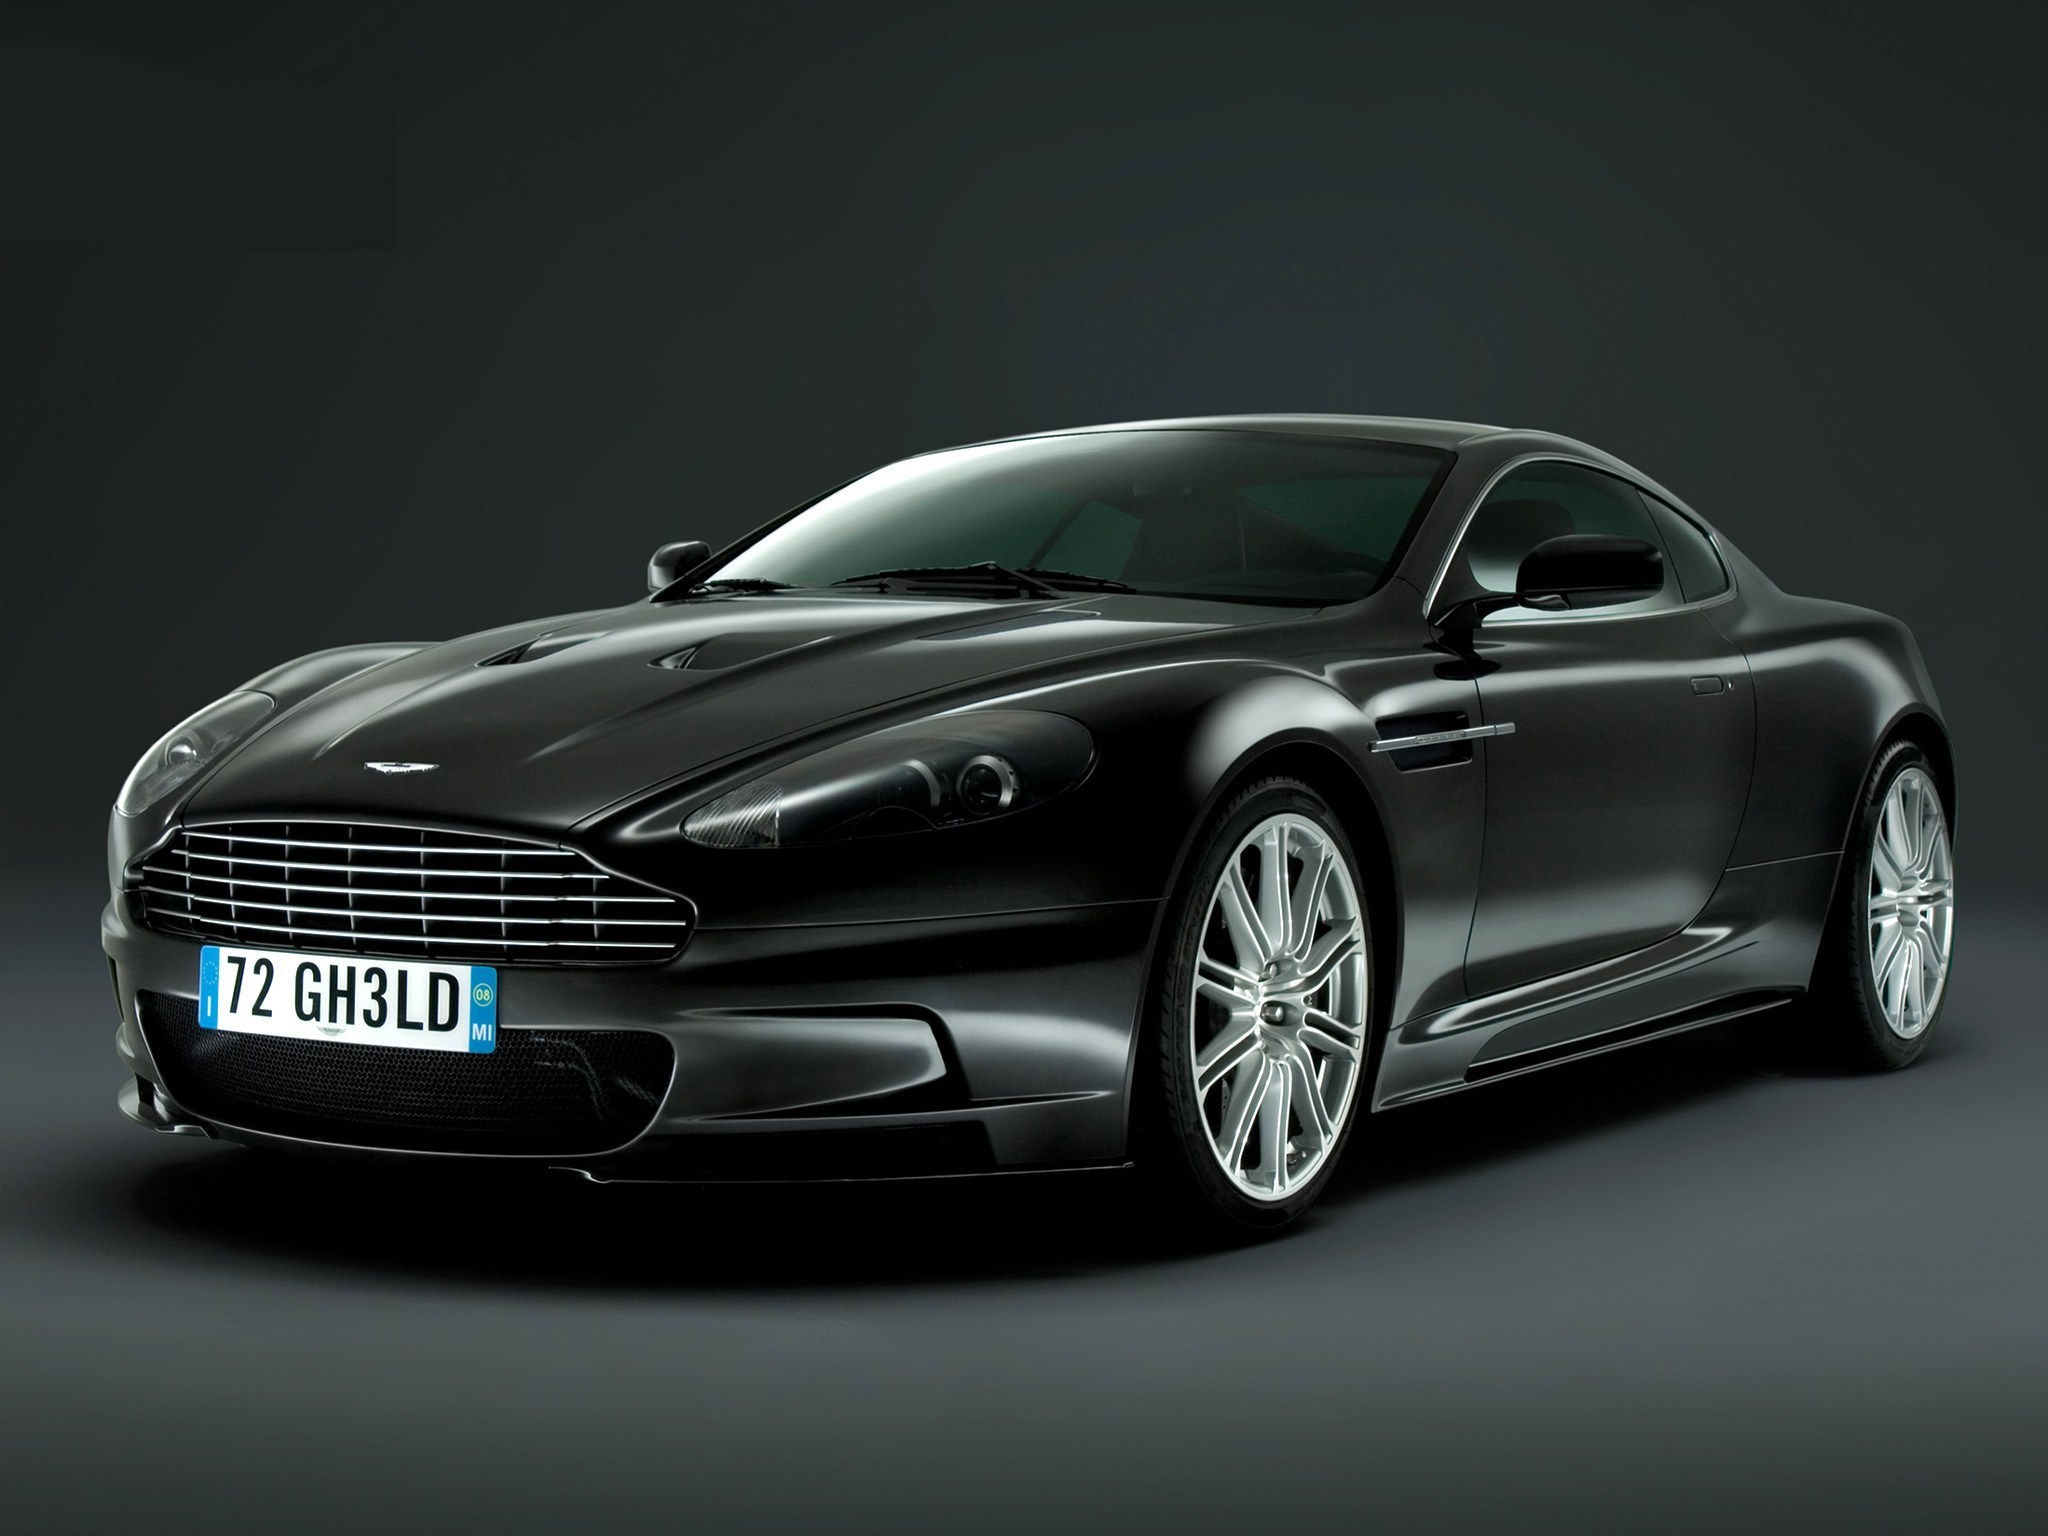 Aston Martin Dbs Quantum Of Solace Wallpaper Picture